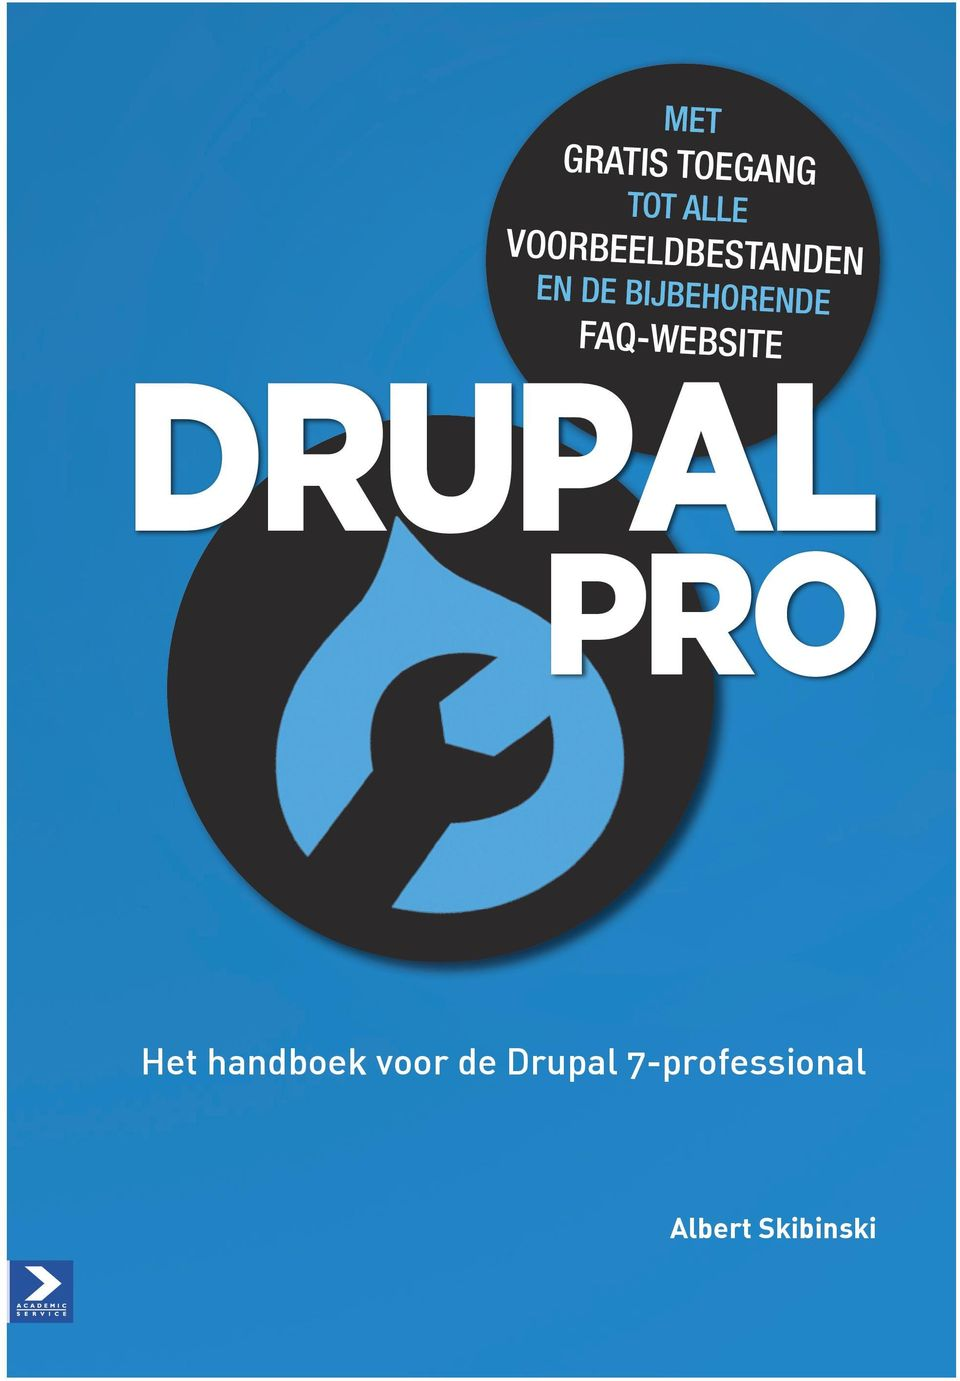 BIJBEHORENDE FAQ-WEBSITE DRUPAL PRO